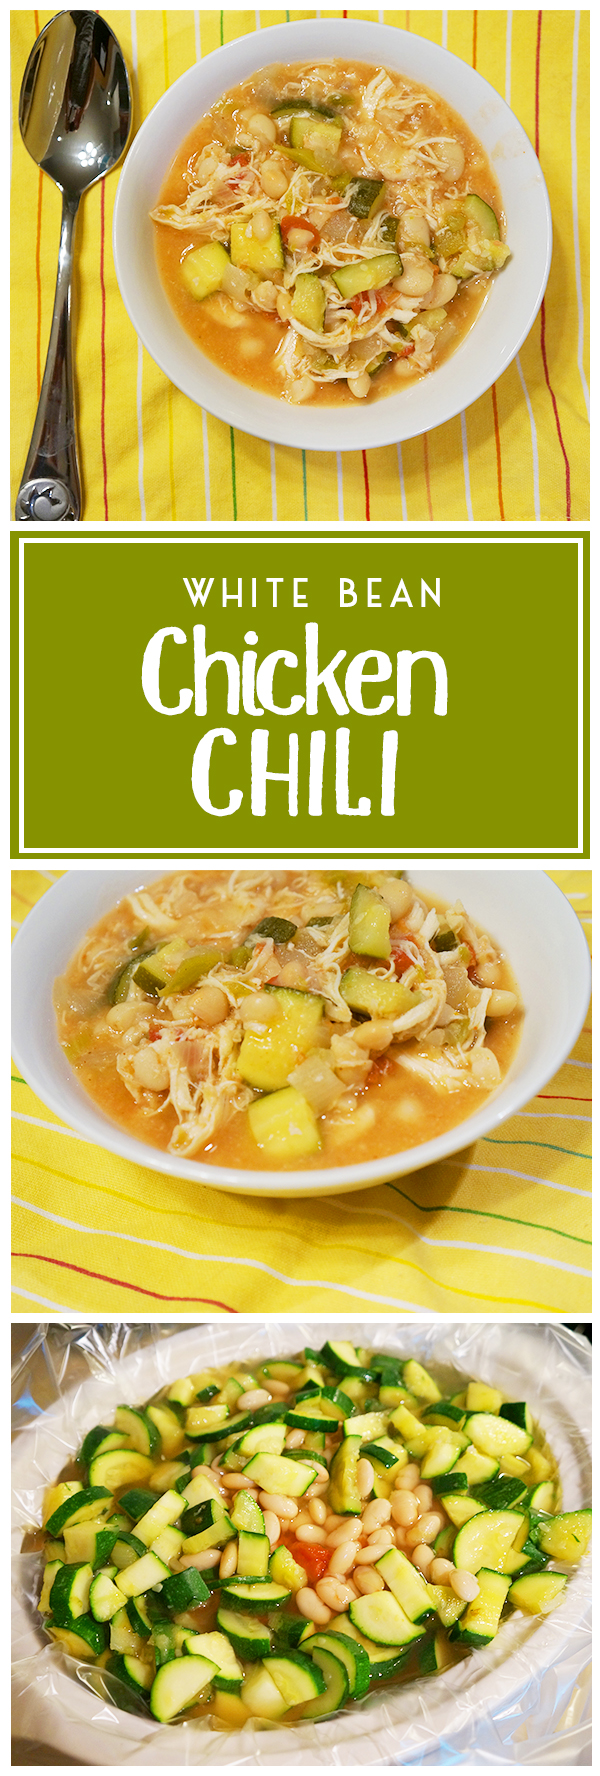 Healthy White Bean Chicken Chili - perfect healthy slow cooker dinner recipe